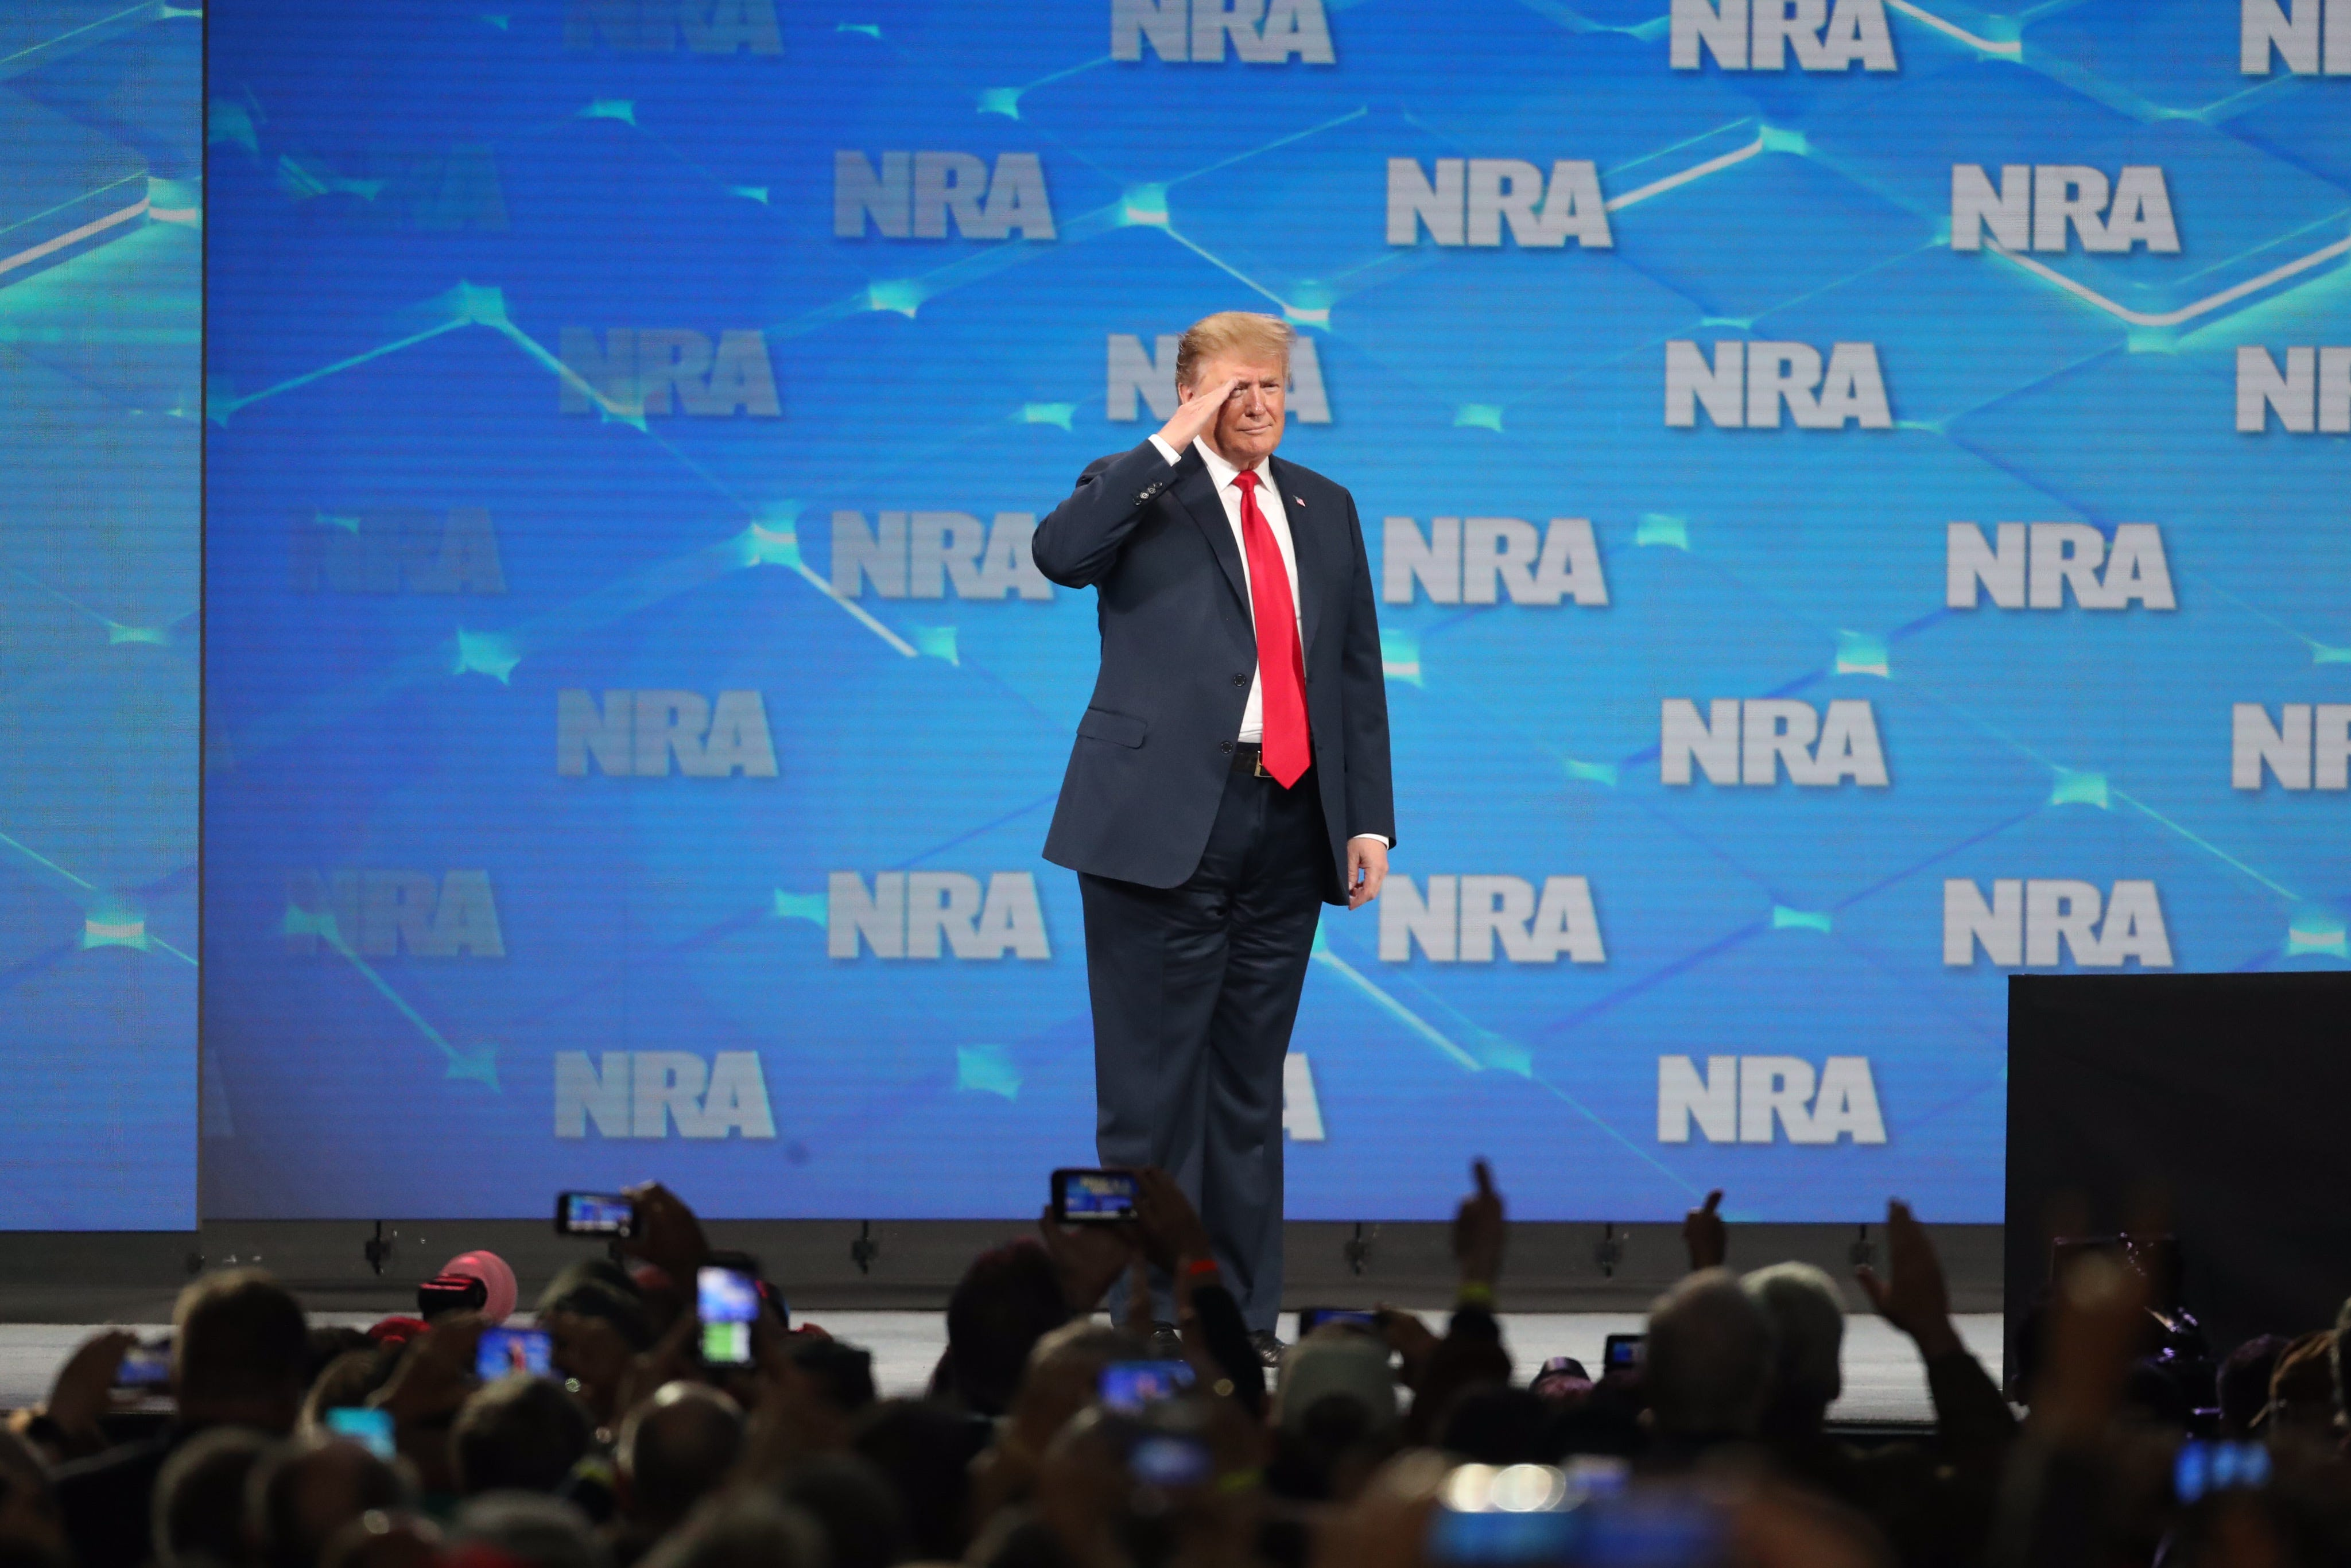 NRA has hobbled the ATF and turned America into a firearm bazaar. Can Biden change that?